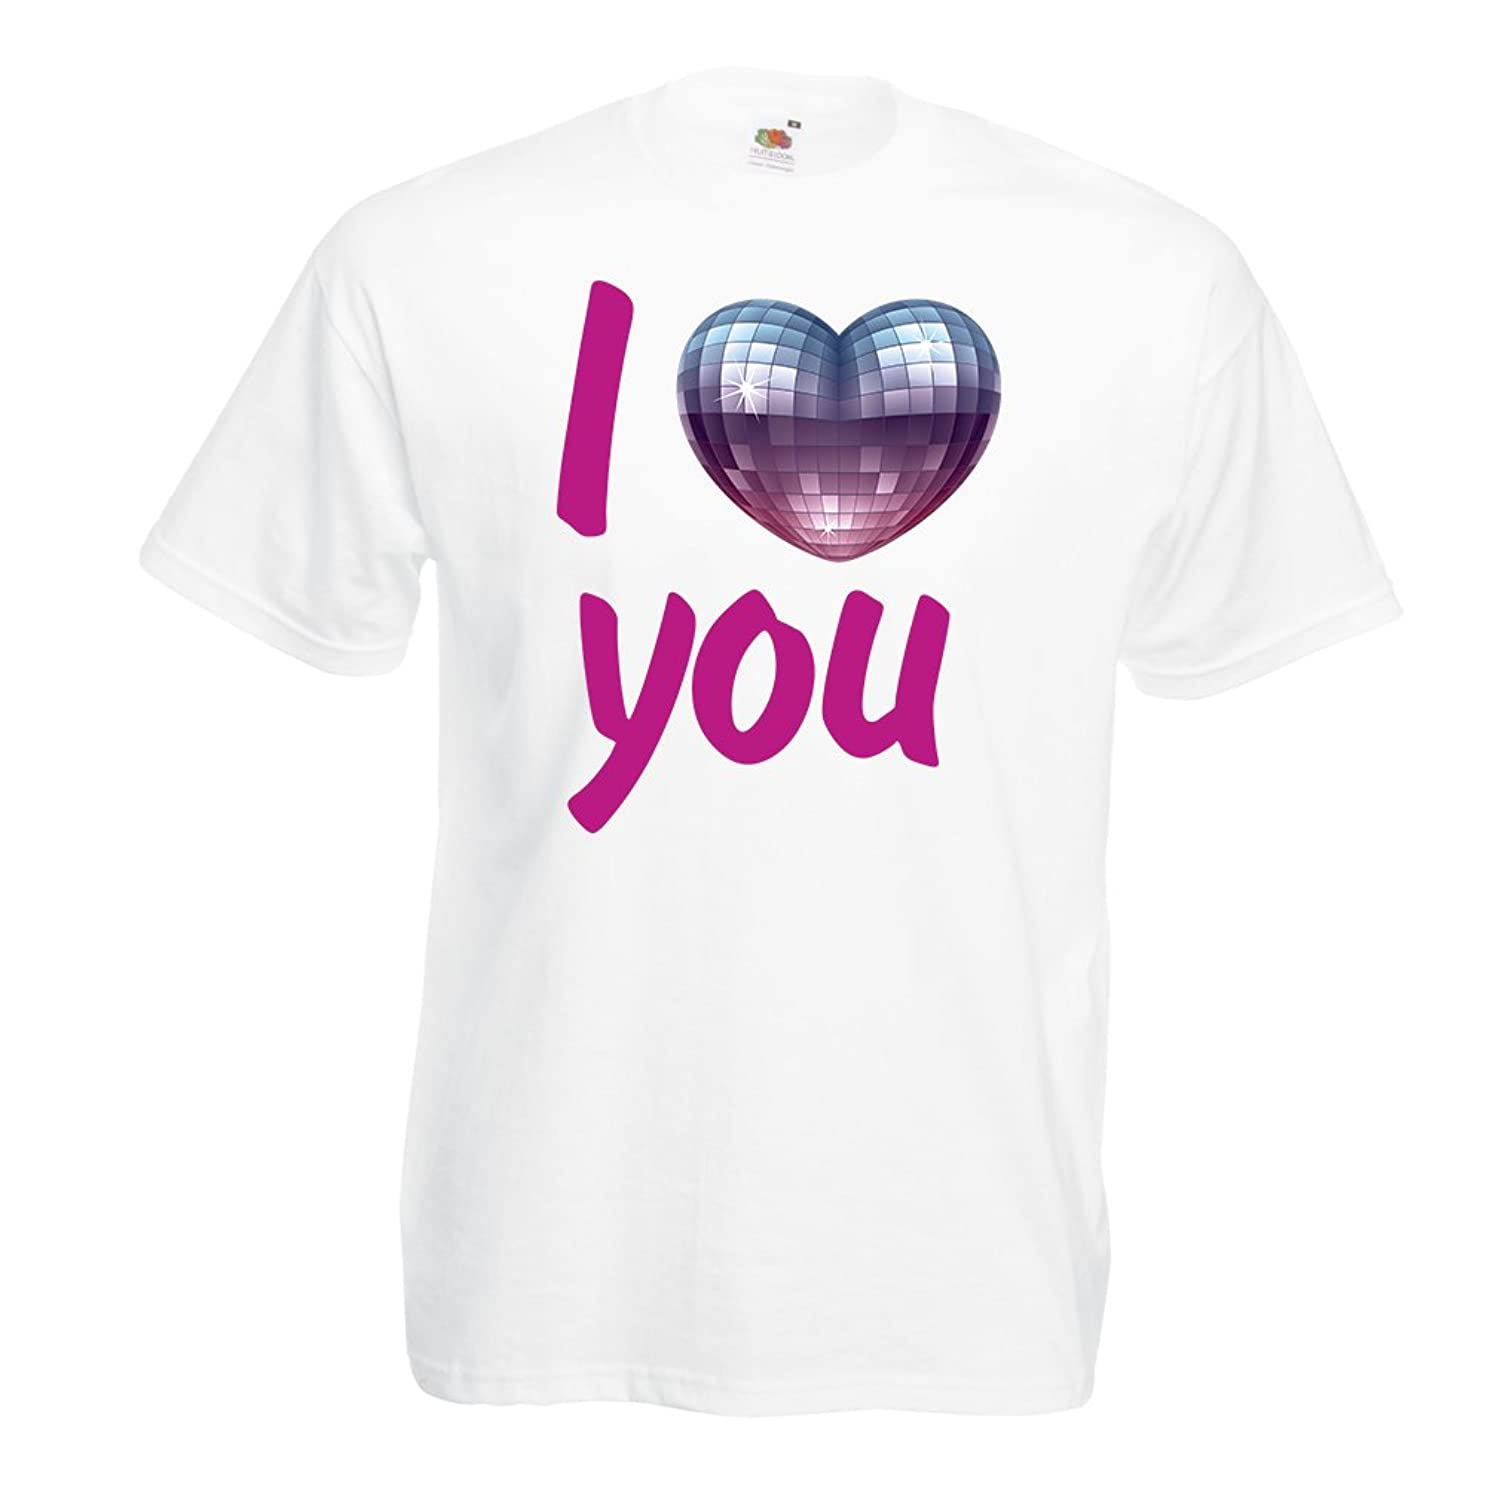 "T shirts for men ""I Love you - disco ball heart"" retro 80s clothing, music shirt, Valentine gifts"